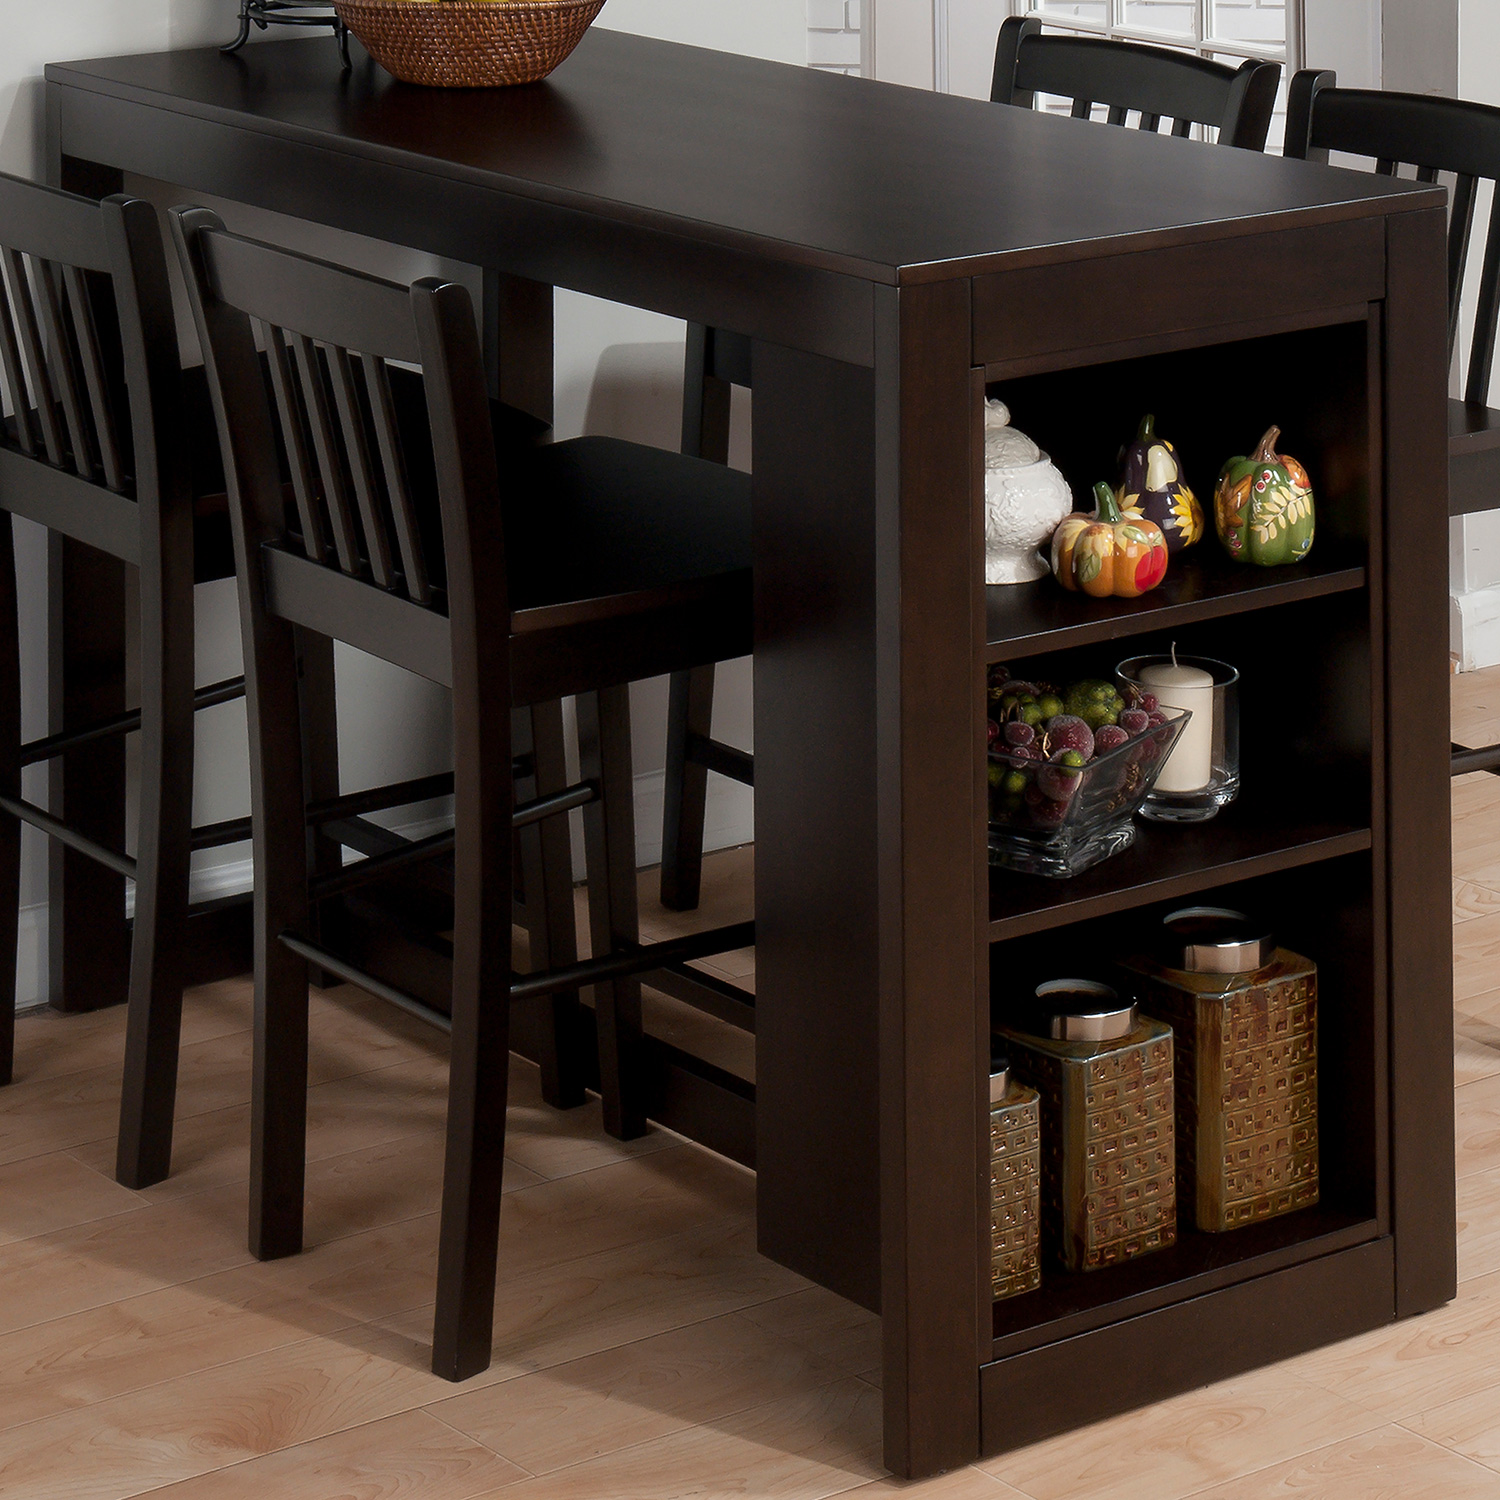 Small Kitchen Tables With Storage: Jofran 810EC-48 Tribeca Counter Height Table W/ 3 Storage